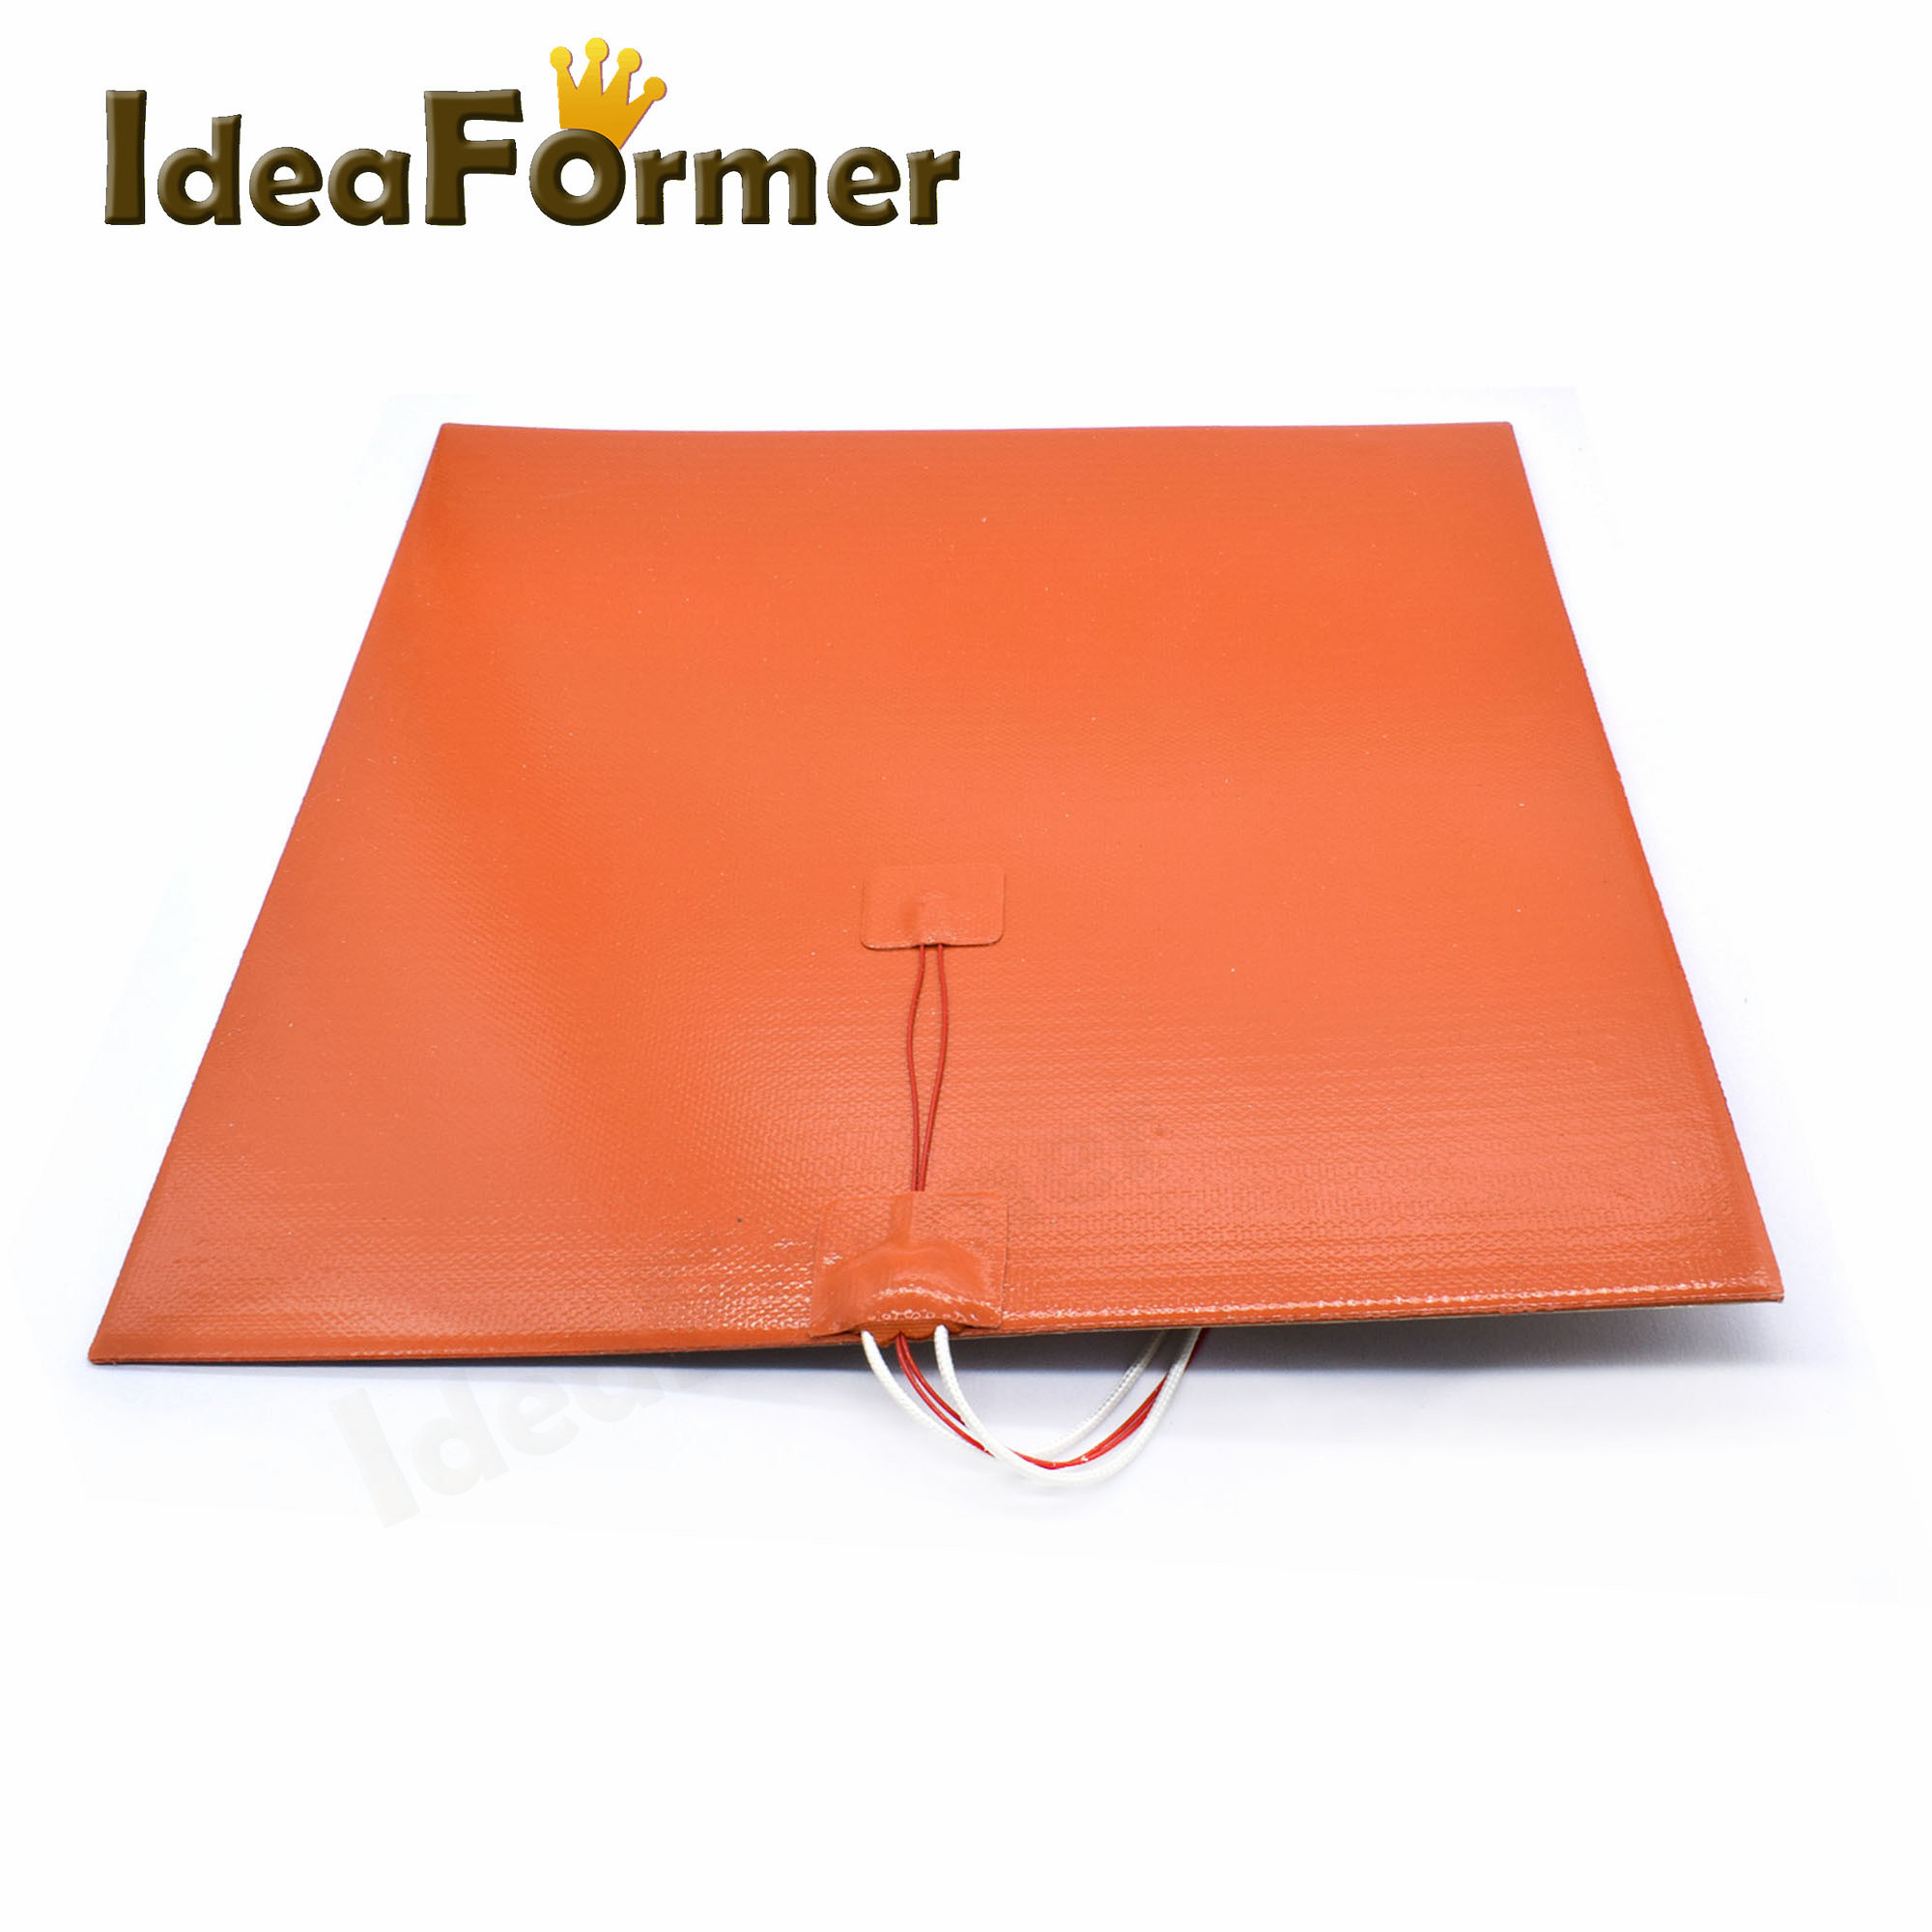 Silicone Heating pad Hot bed Size 200*200mm/220*220/300*300mm/400*400mm 12V/110V/220V  160W/200W/280W/360W/500W 3D Printer partsSilicone Heating pad Hot bed Size 200*200mm/220*220/300*300mm/400*400mm 12V/110V/220V  160W/200W/280W/360W/500W 3D Printer parts